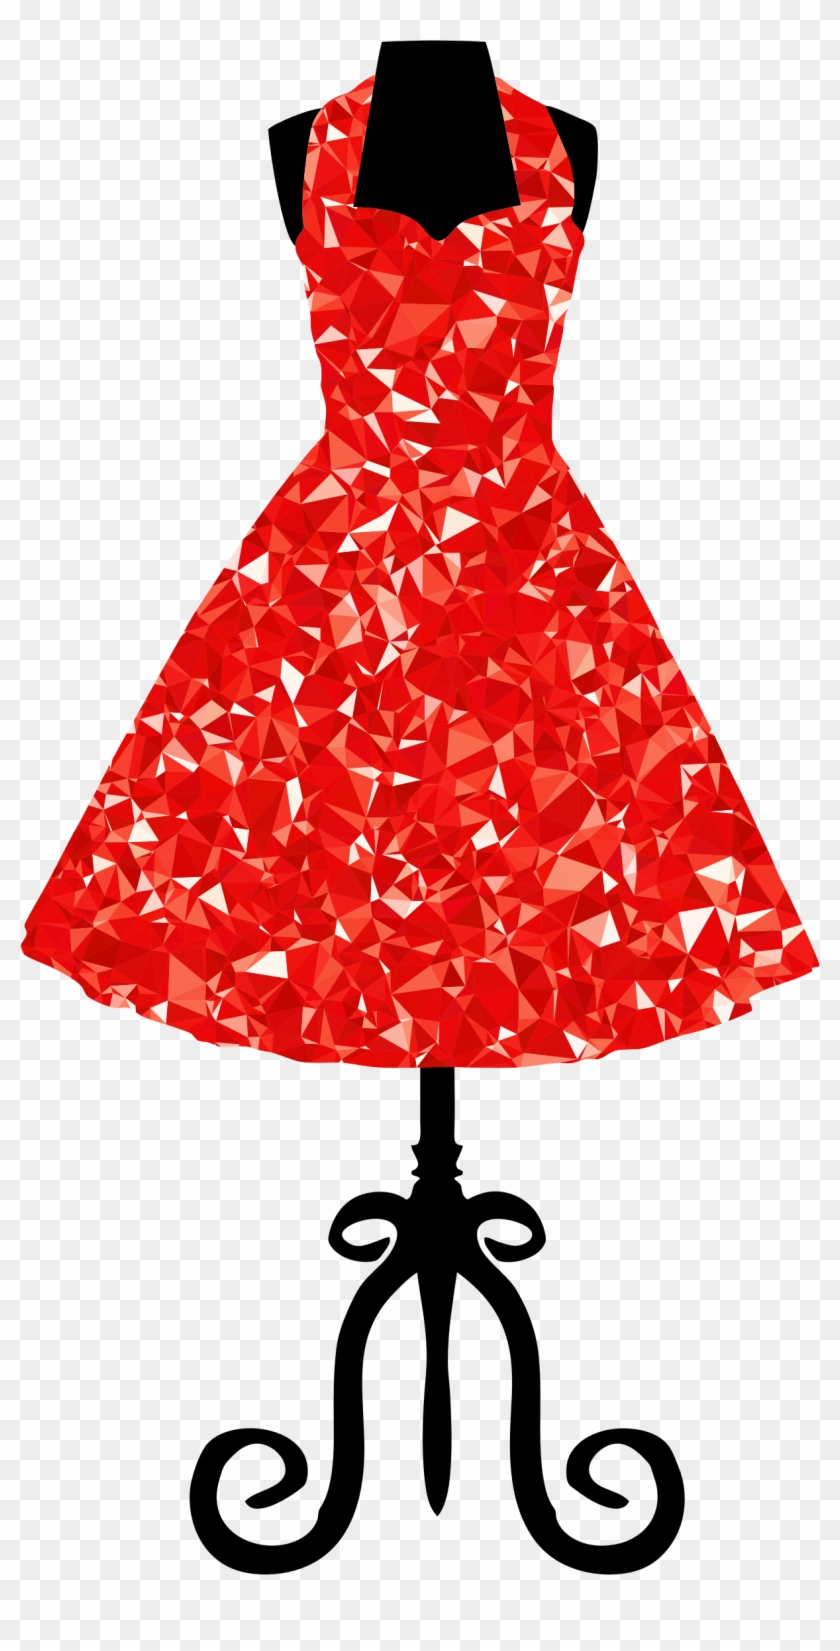 1950s dress on form clipart